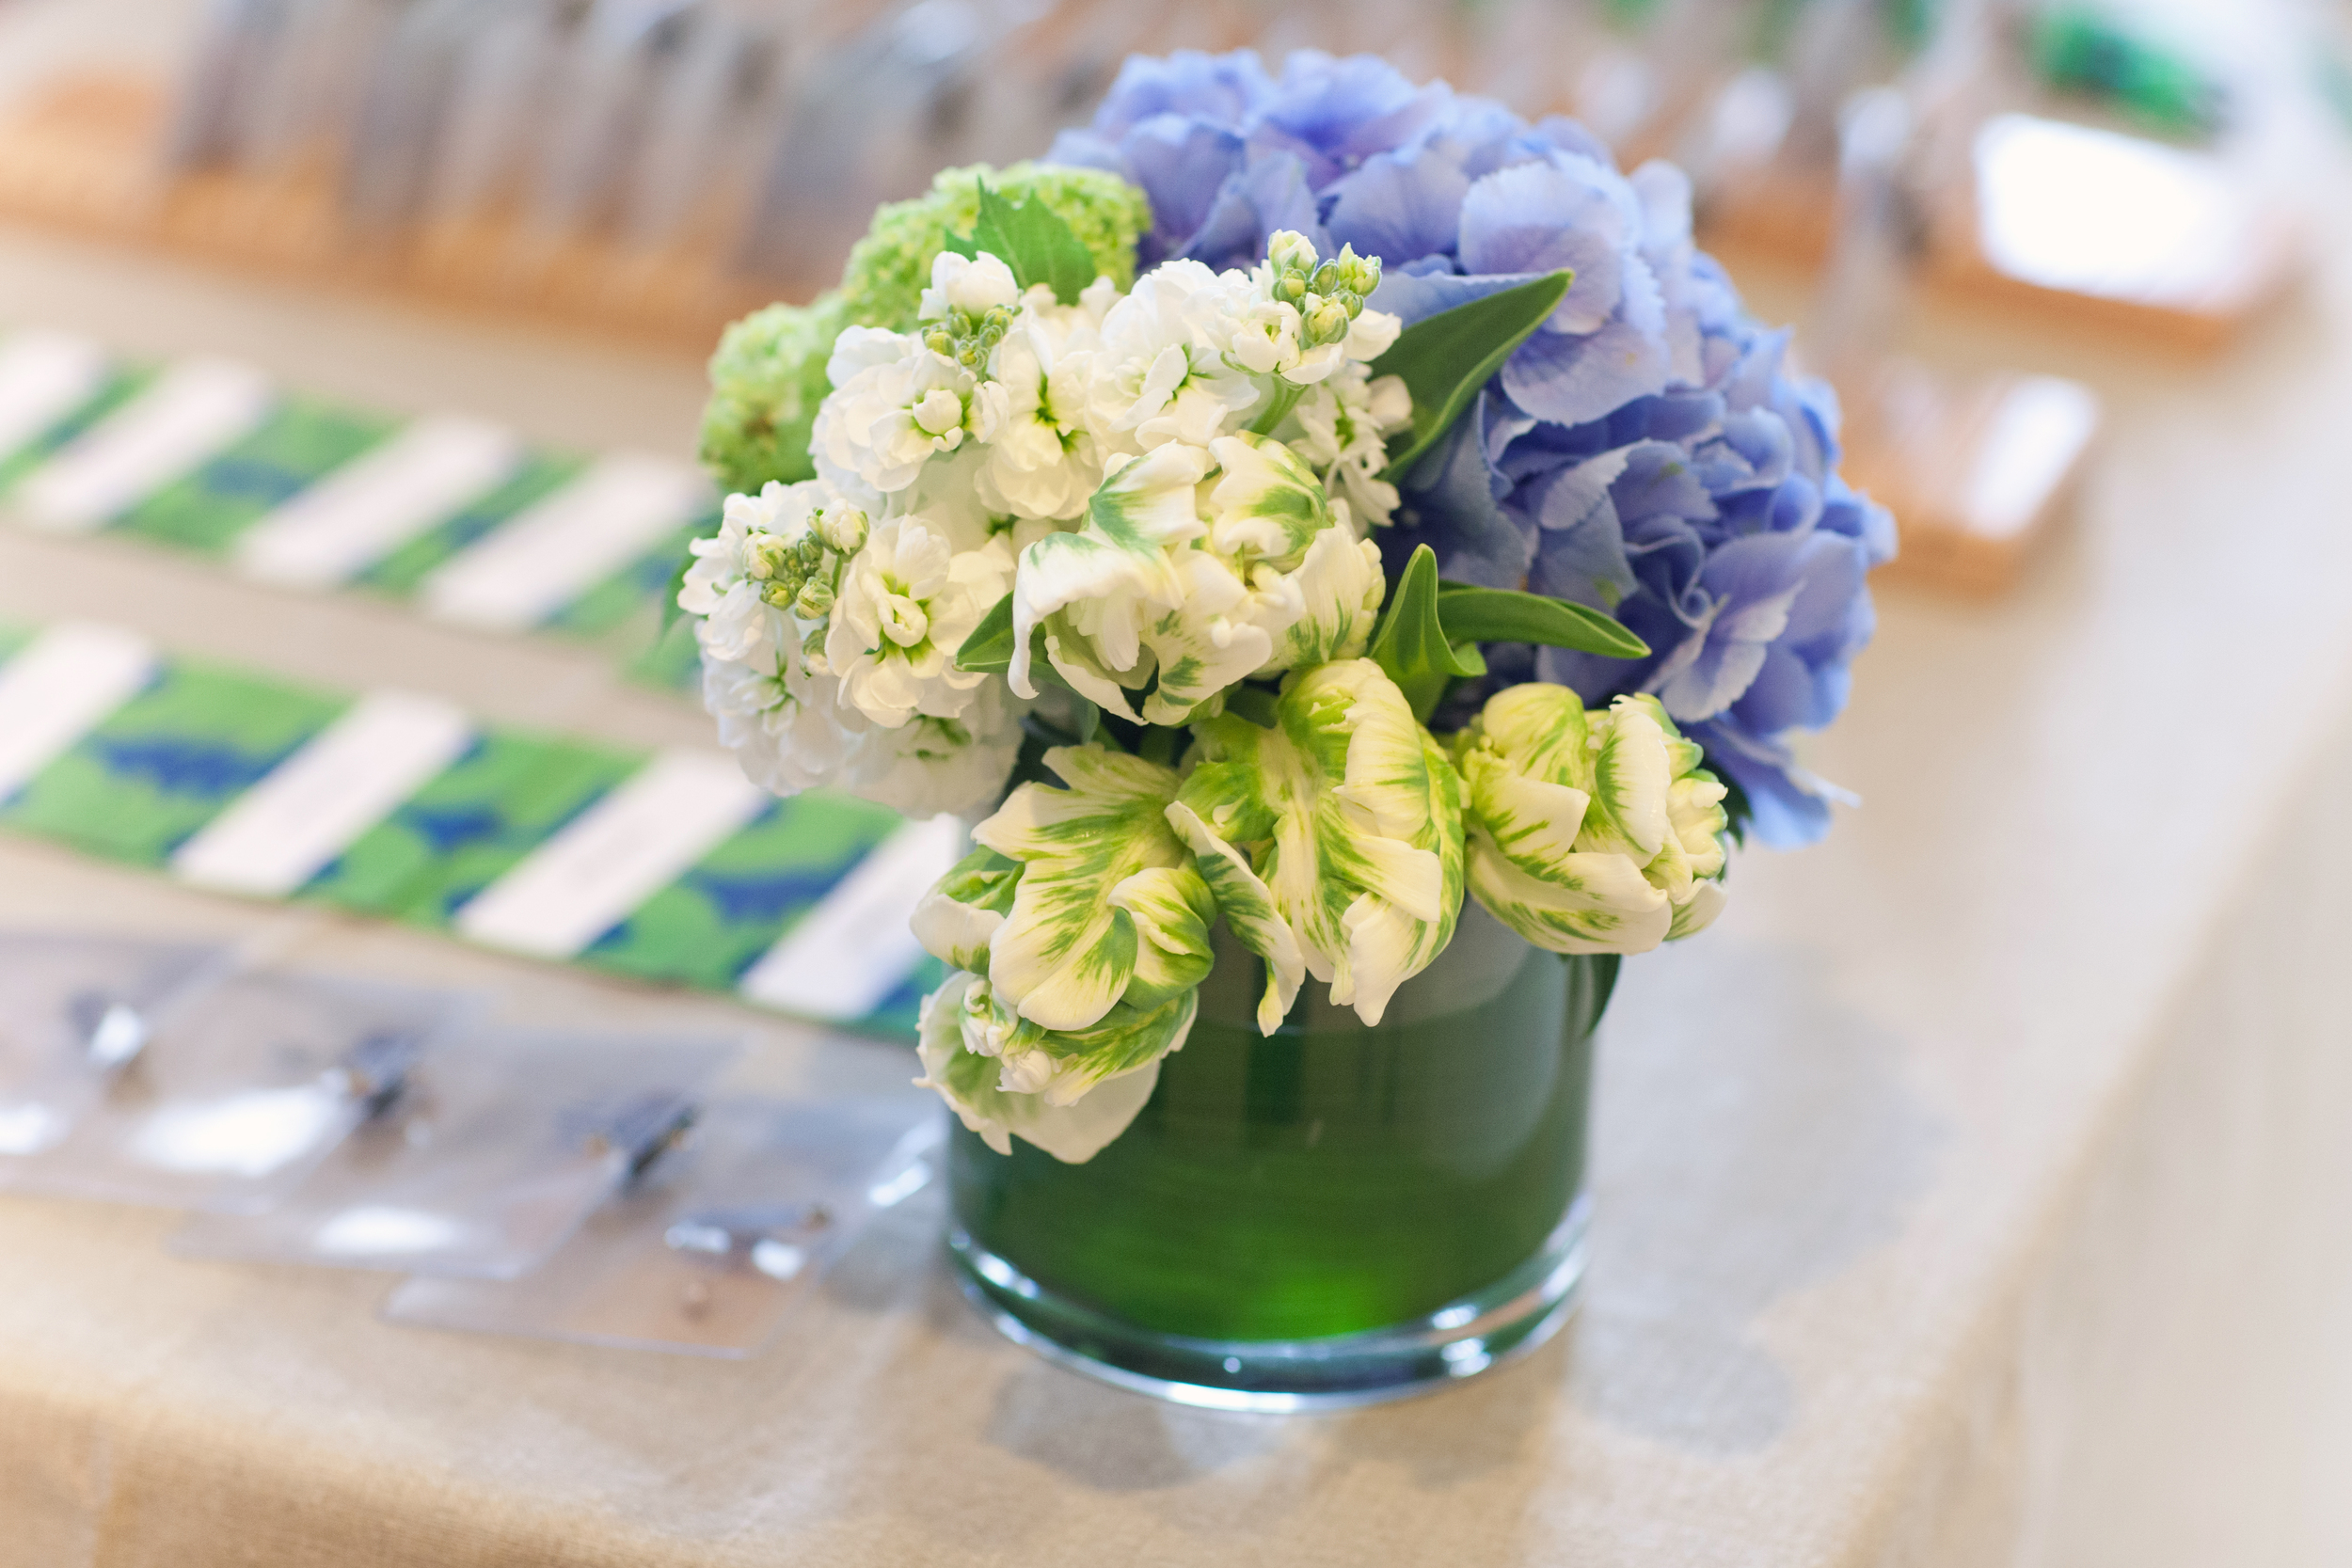 Grand Rapids, Michigan Florist and Event Planner